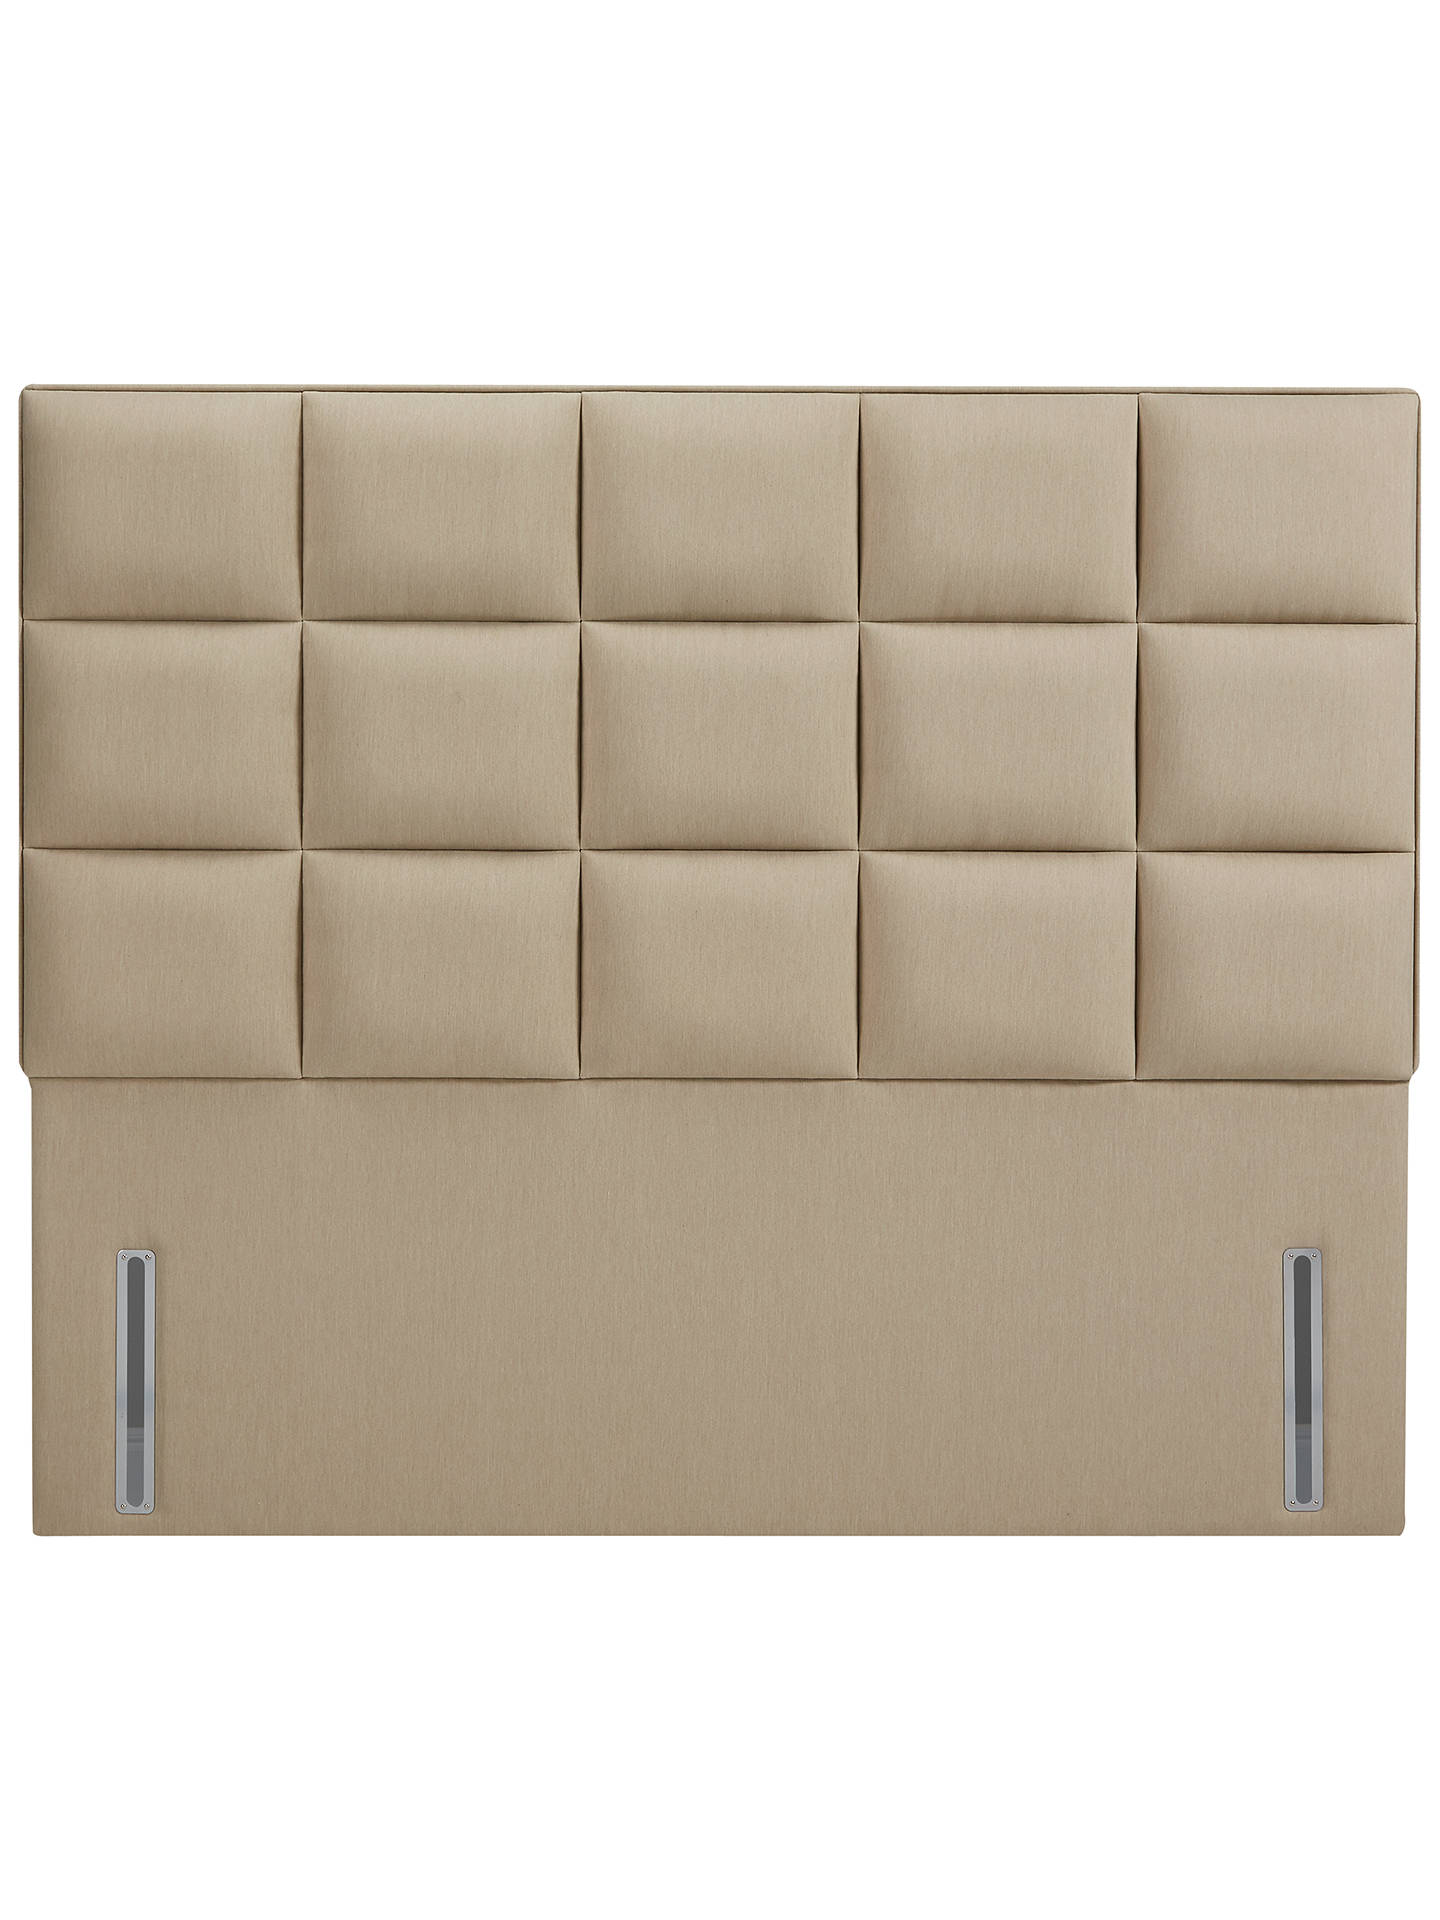 BuyJohn Lewis & Partners The Ultimate Collection Gloucester Headboard, Pebble Canvas, Super King Size Online at johnlewis.com